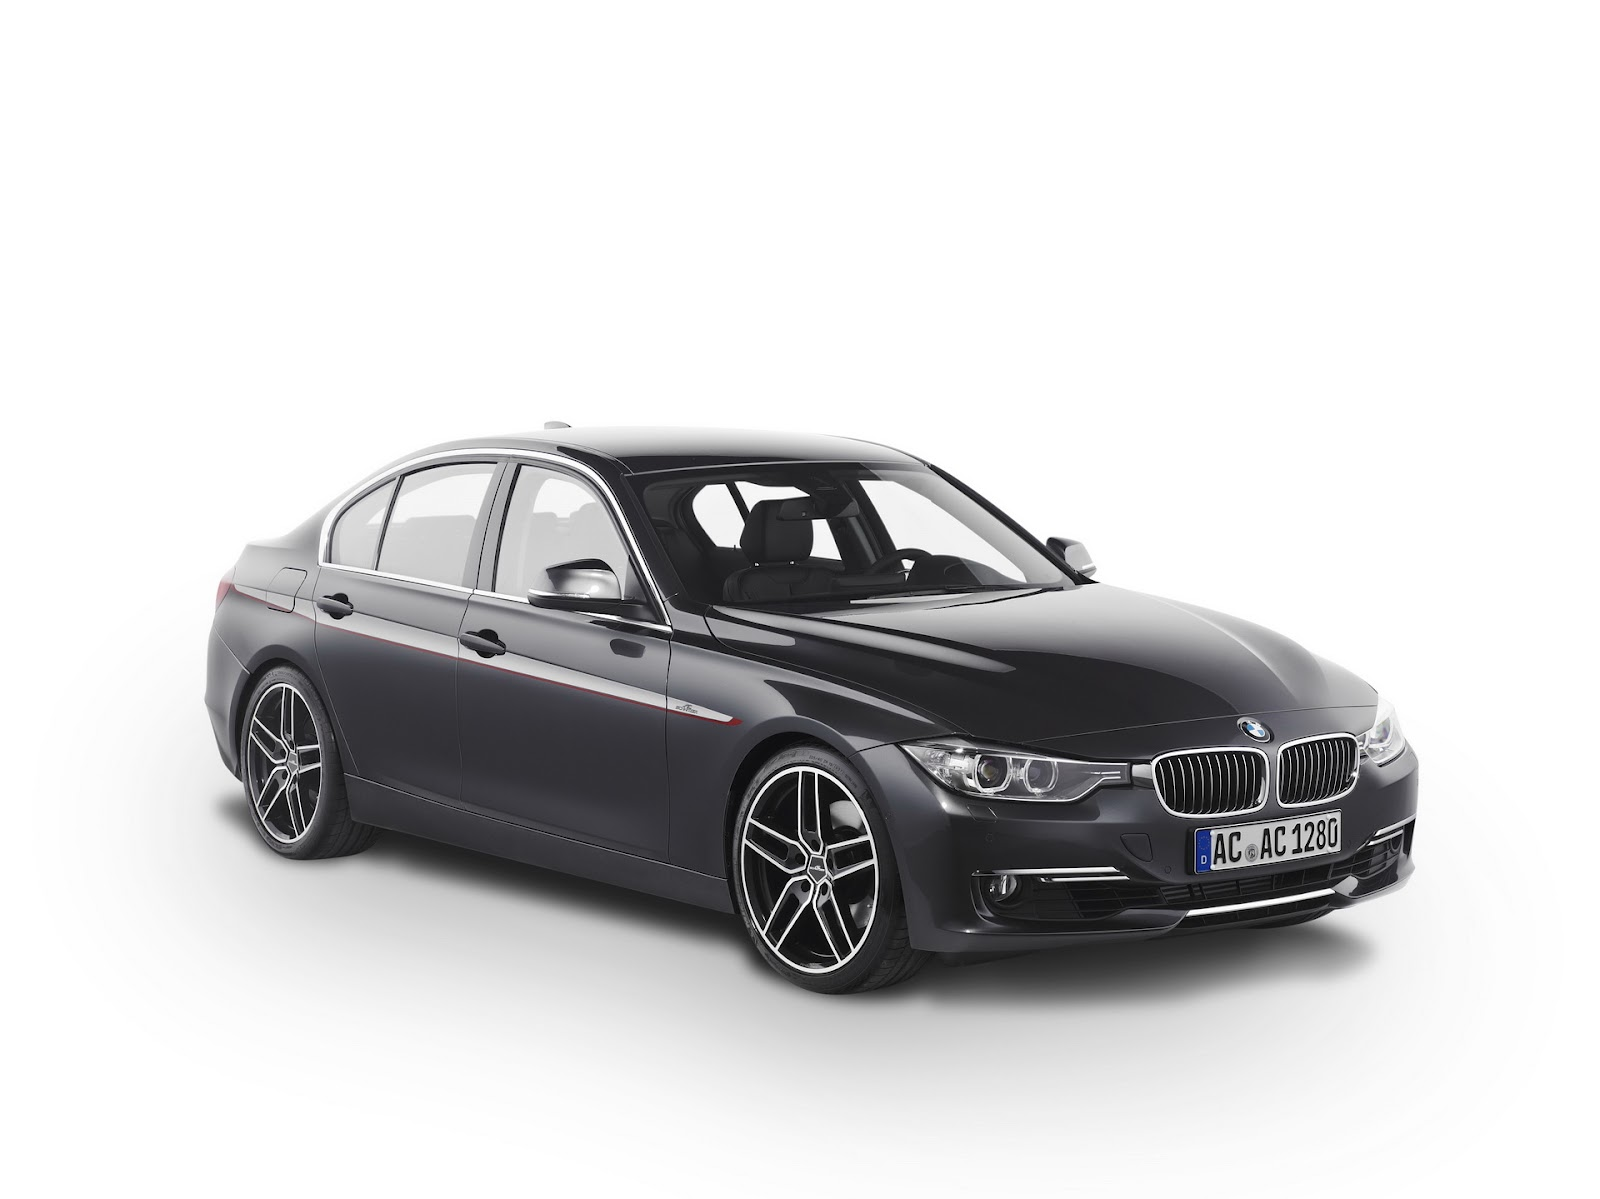 2012 AC Schnitzer BMW 328i Saloon Specs and Review  NEW CARS PICTURES